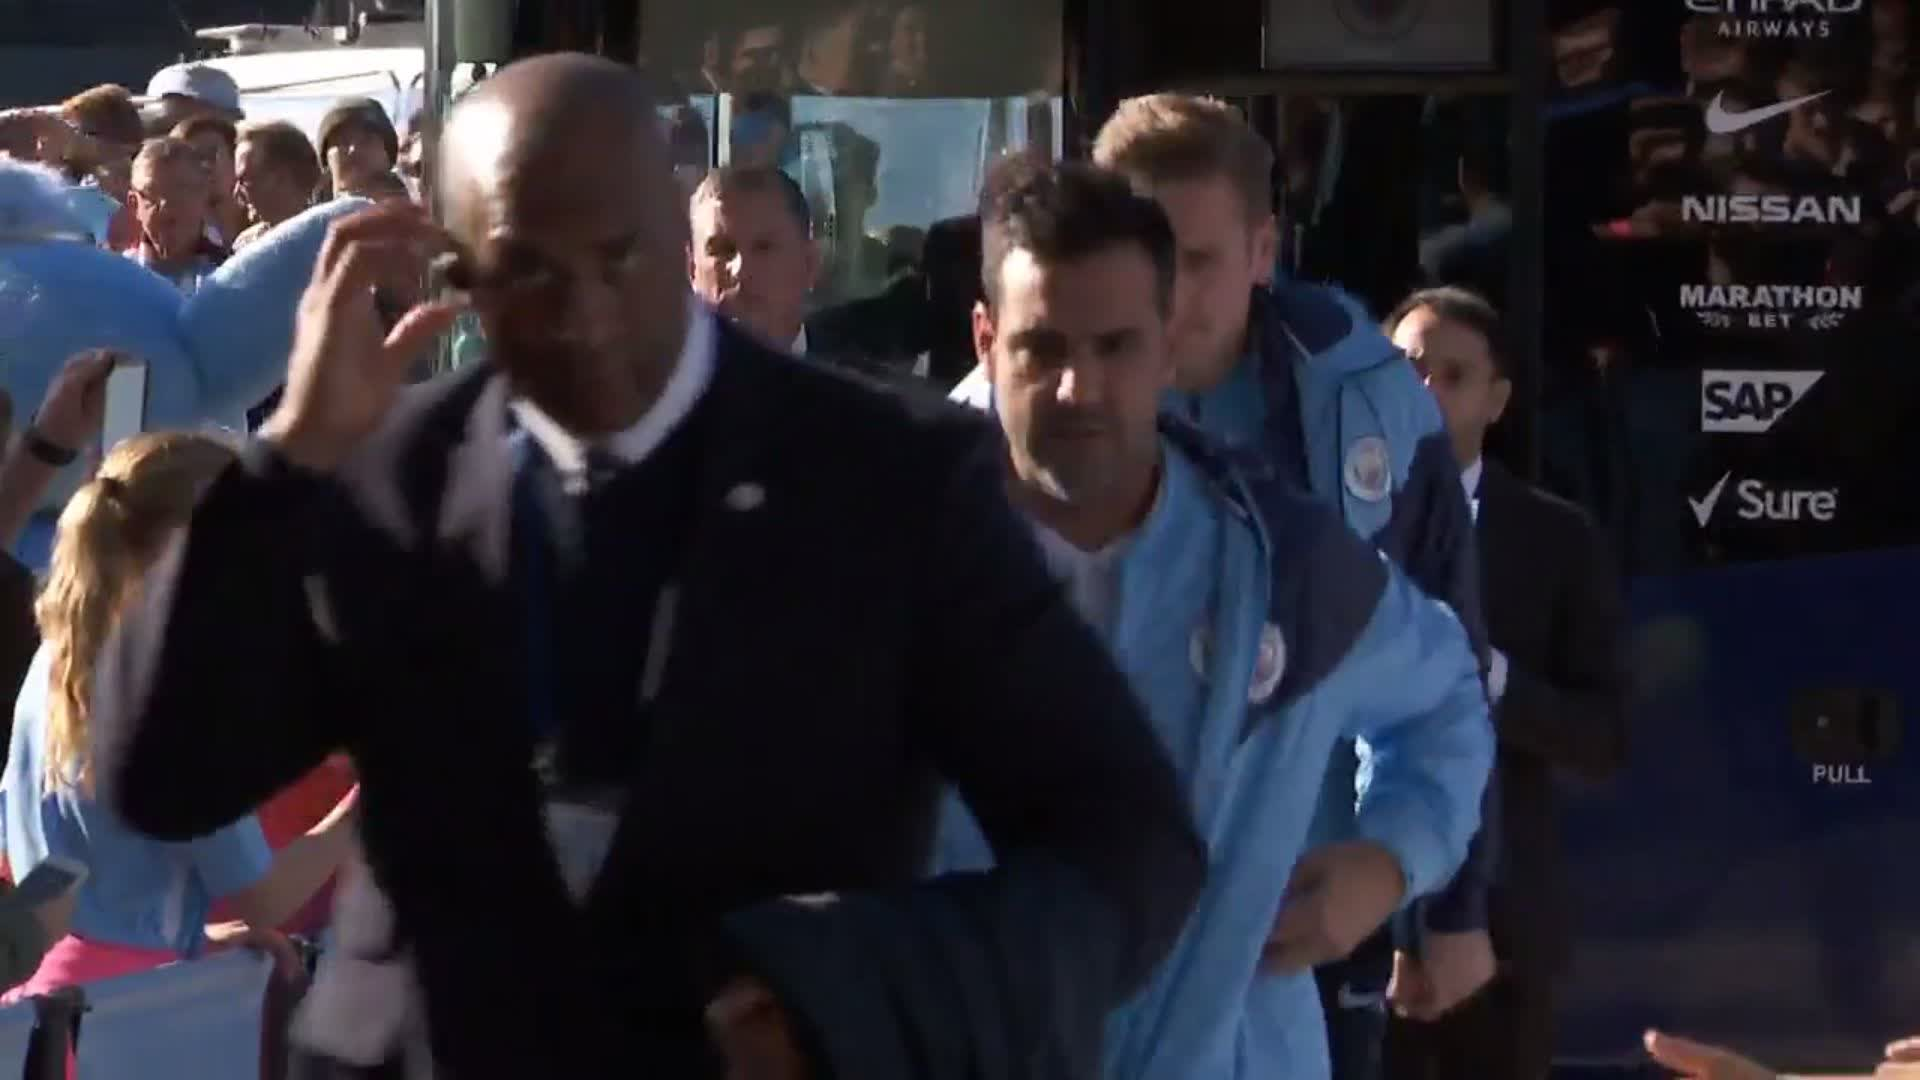 Welcome back, boys! Missed ya! ��  #cityvbfc #mancity https://t.co/eh6vhzAnhH